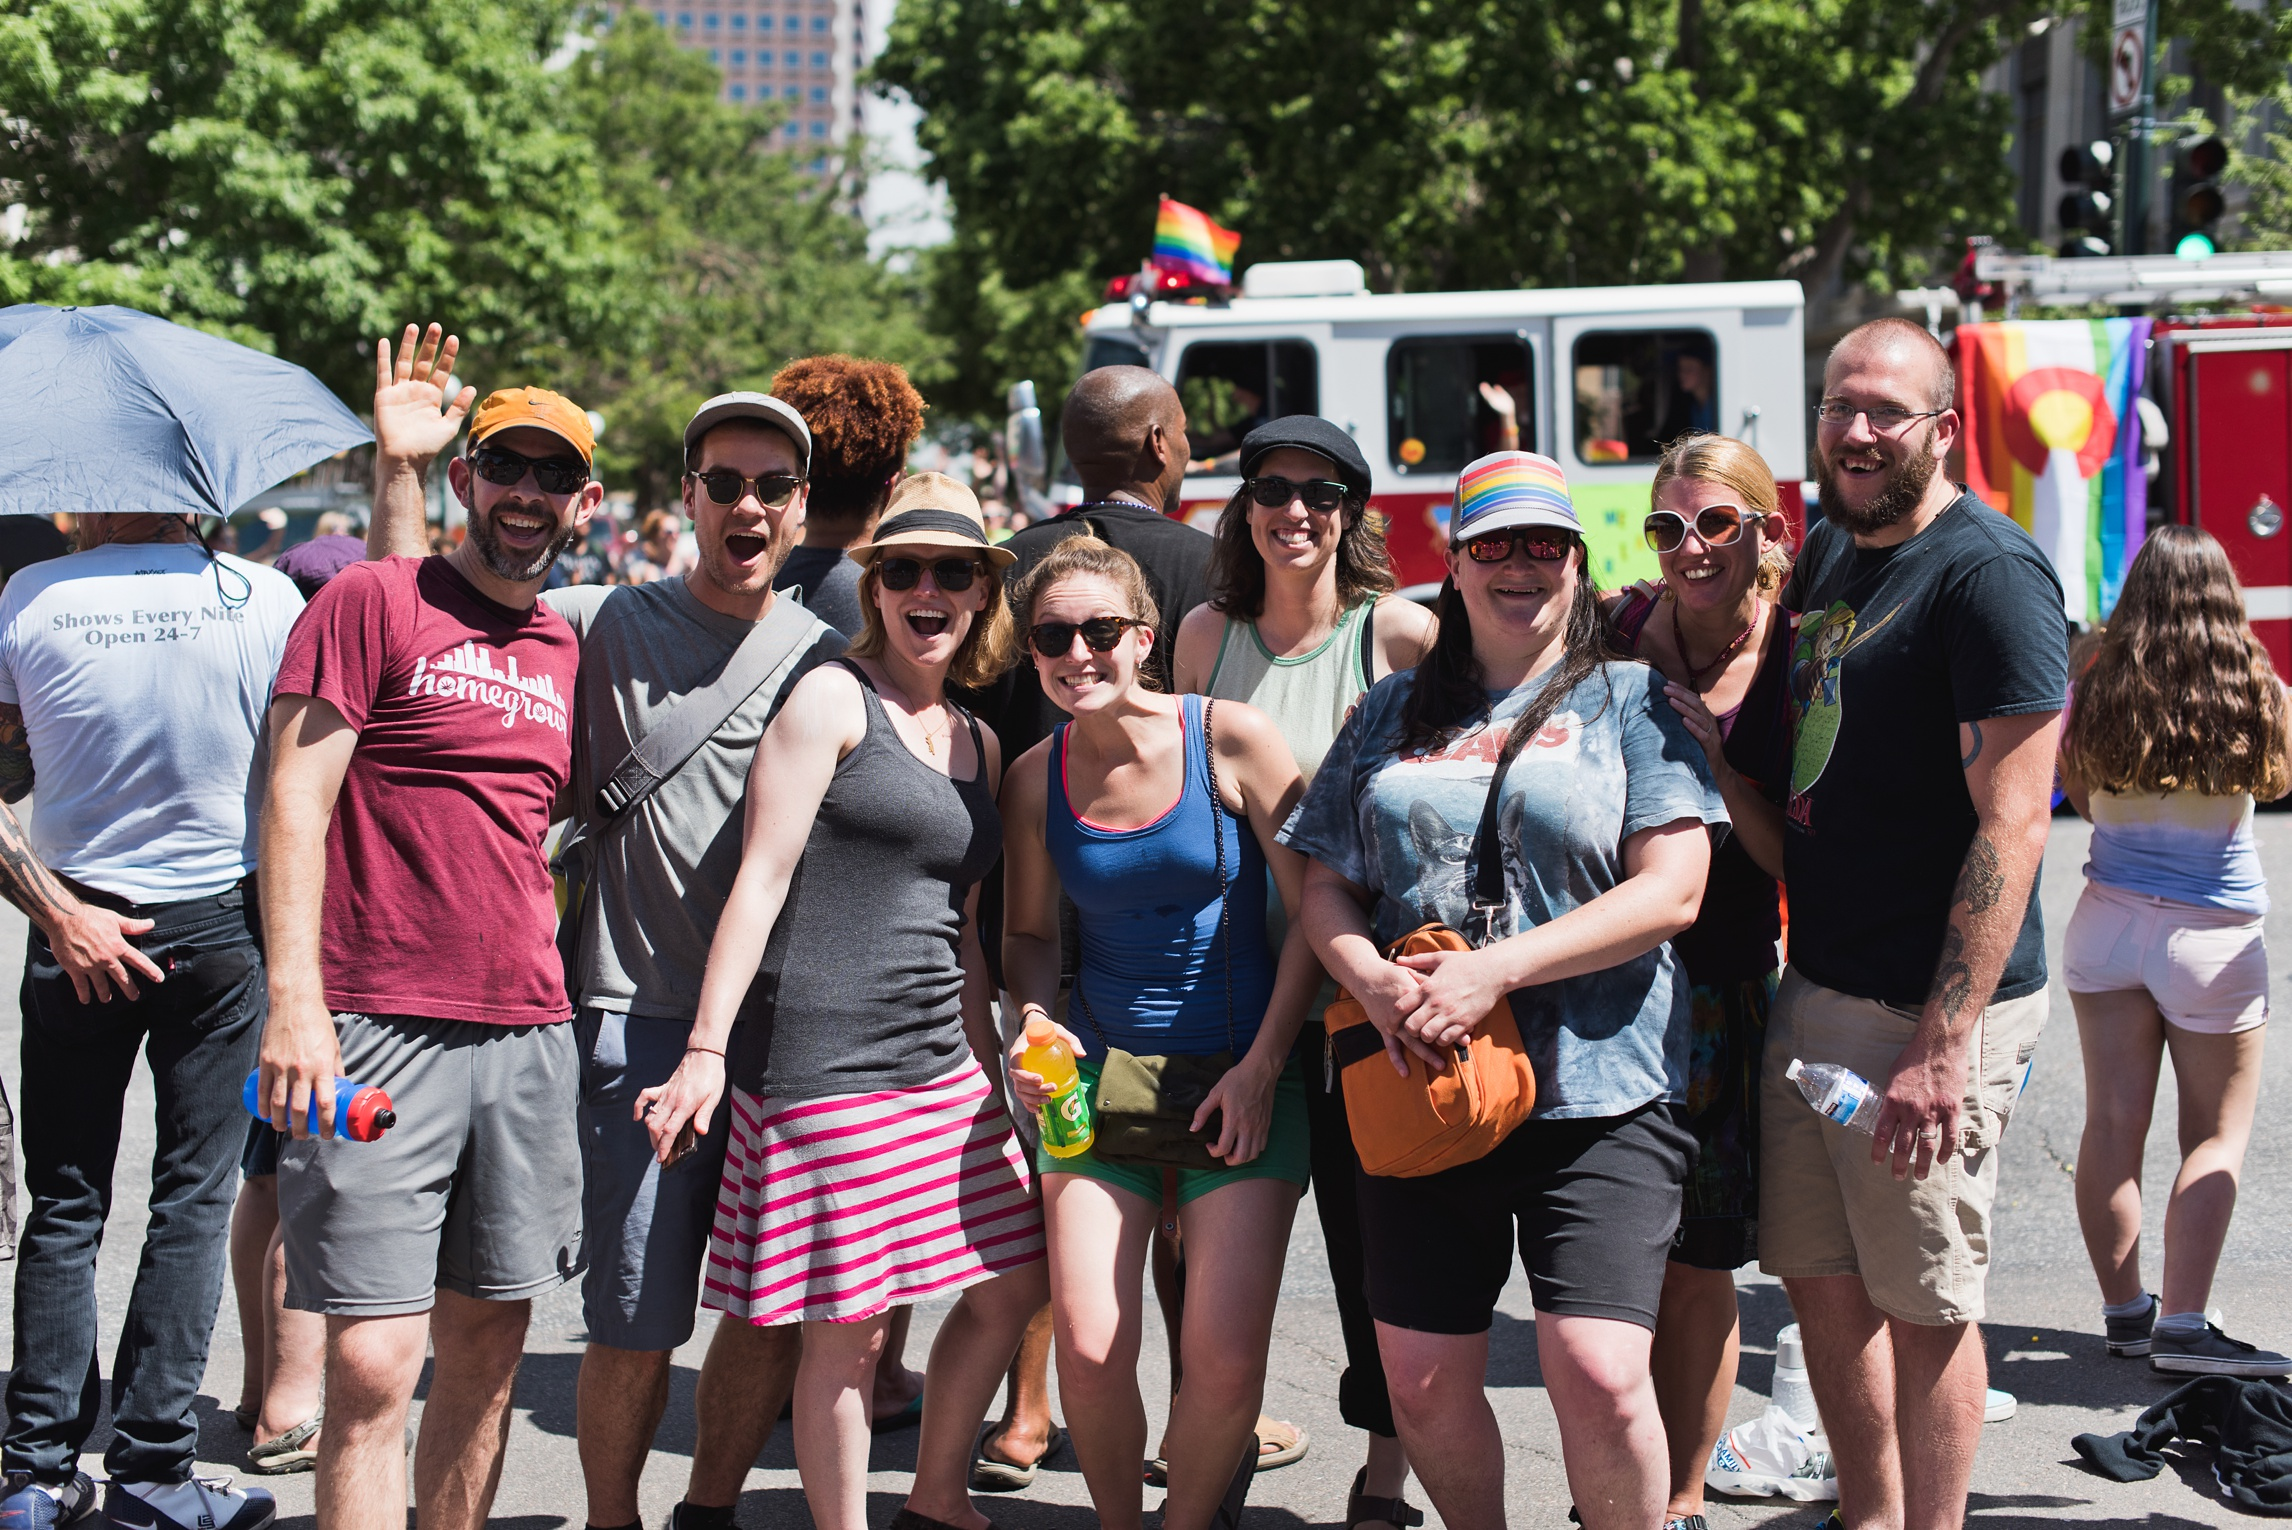 Some of our friends at the pride parade in Denver. Photography by Sonja Salzburg of Sonja K Photography.